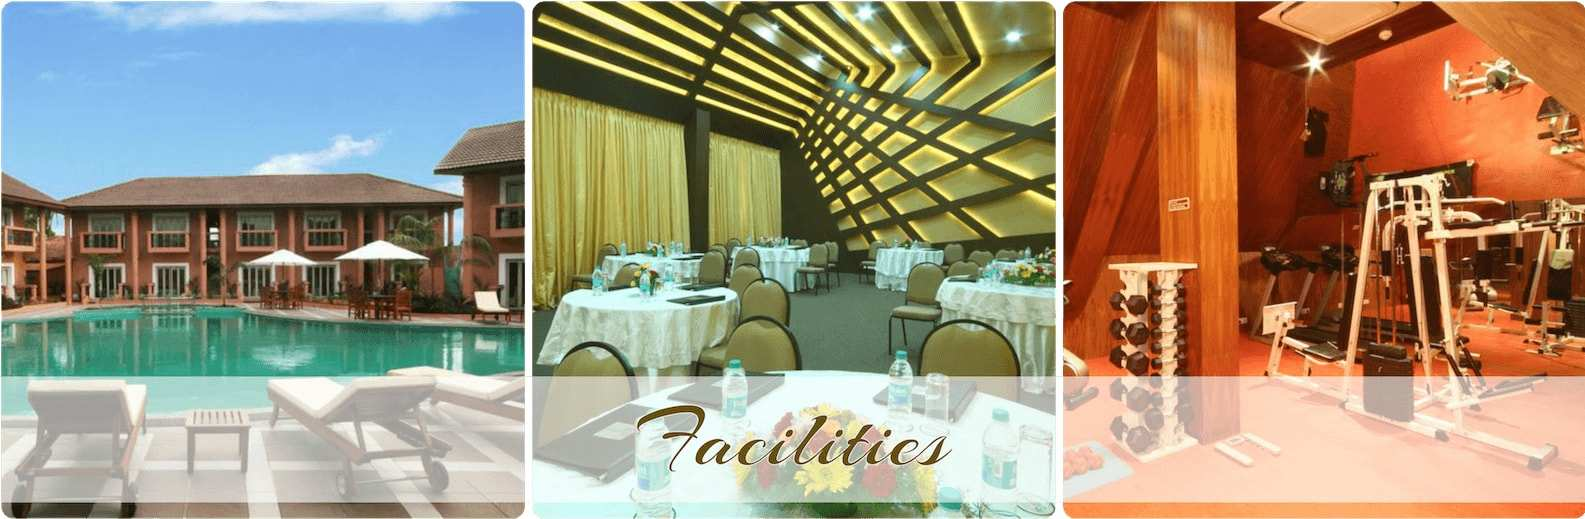 Facilities-golden-palms-colva.jpg